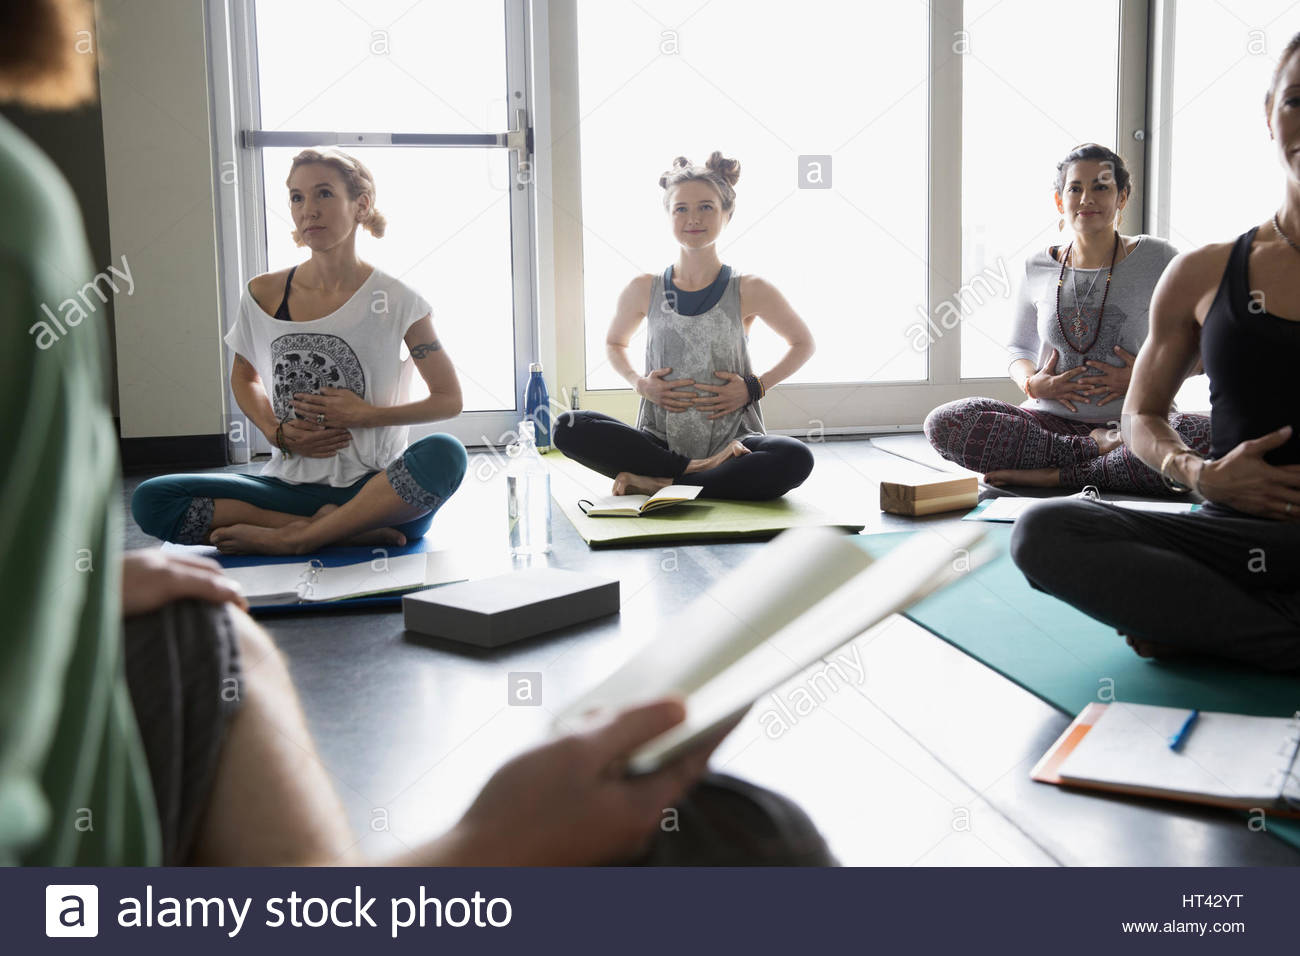 Yoga class with journals practicing breathing with hands on stomachs in yoga class studio - Stock Image